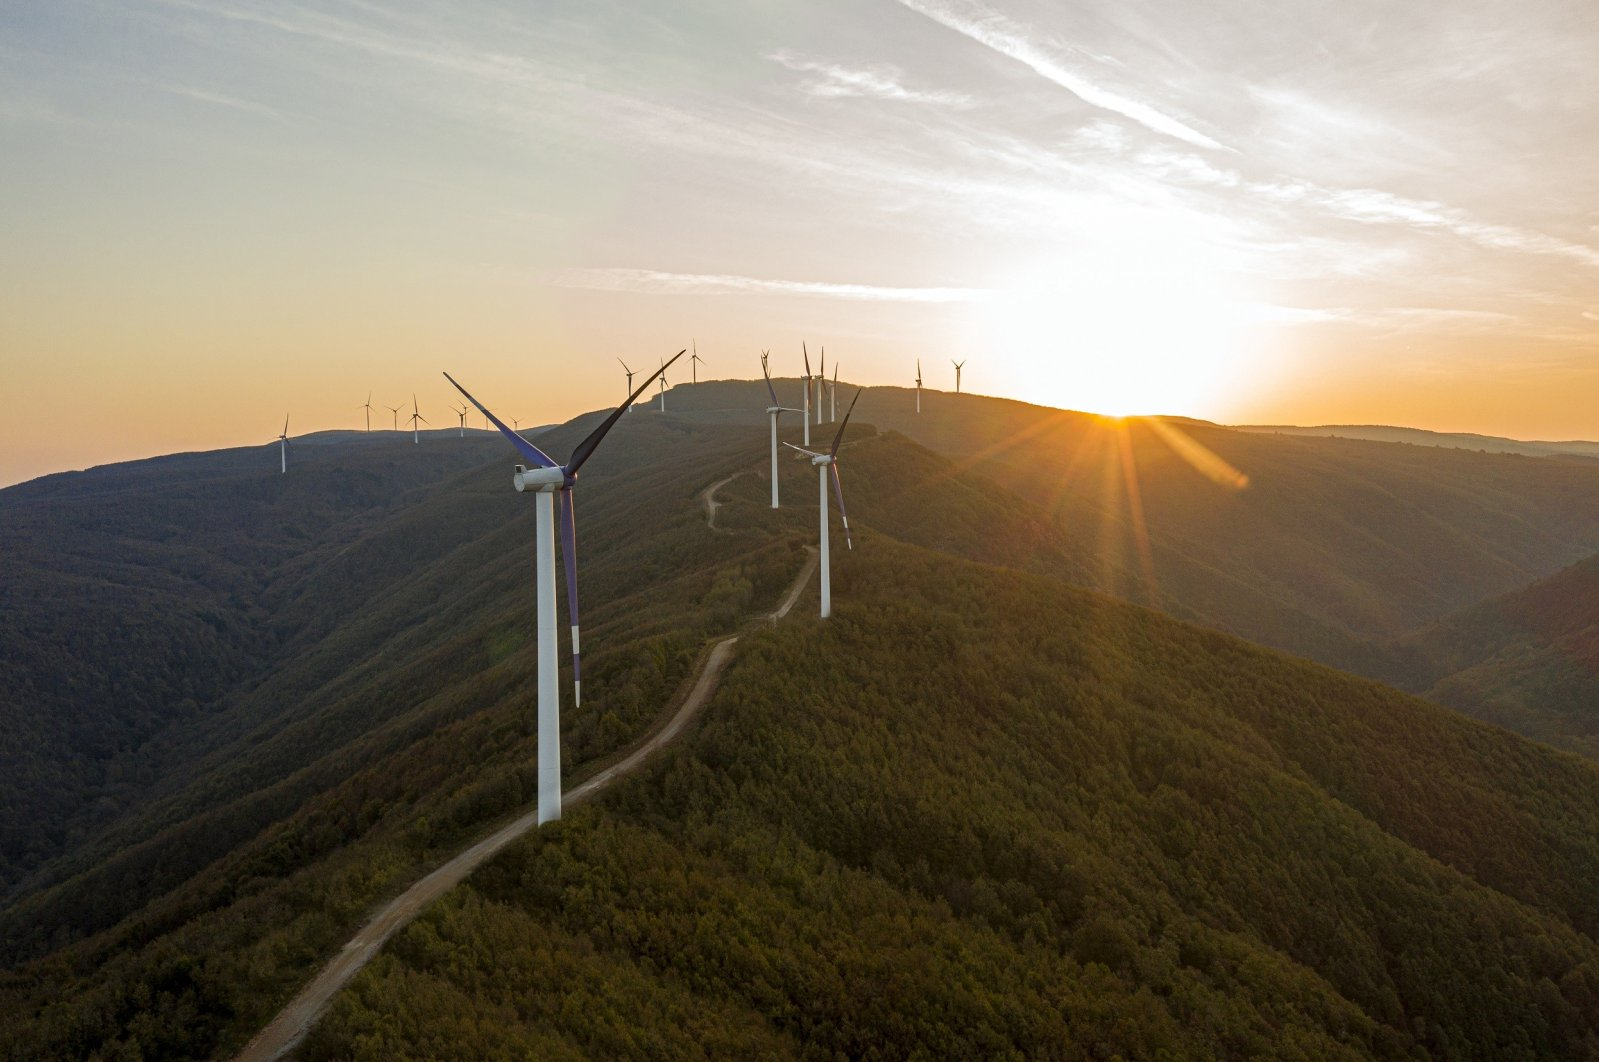 Turkey produced 66% of its electricity from local and renewable resources in the first five months of 2020. (IHA Photo)